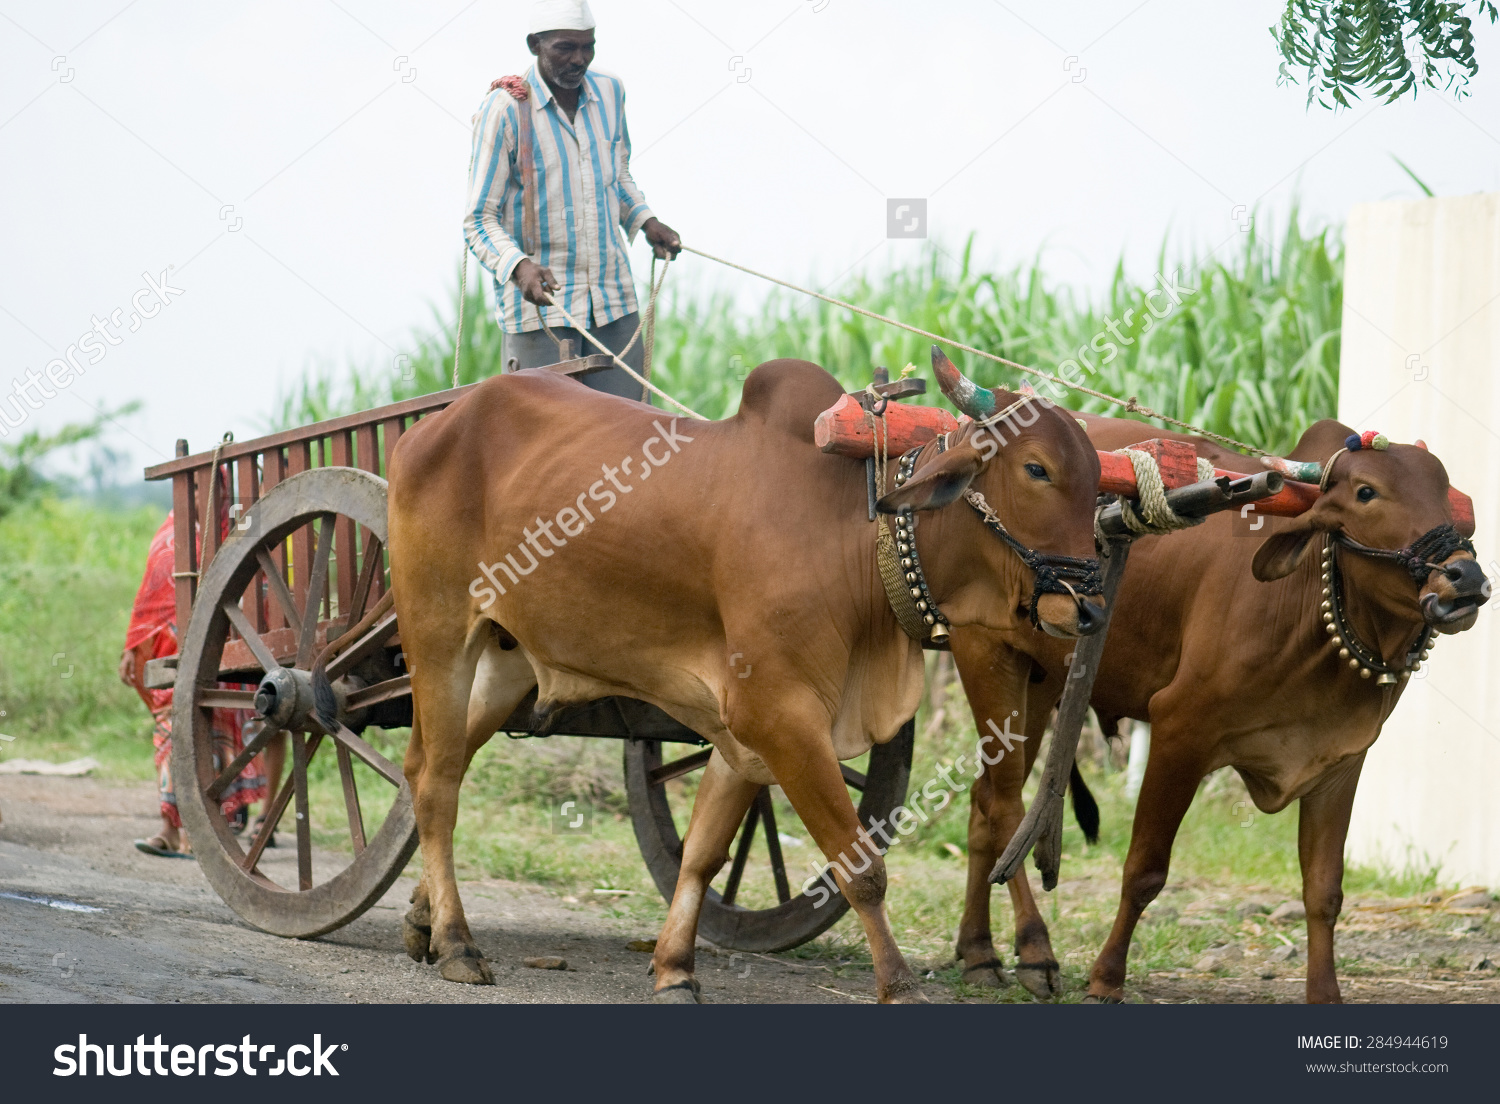 Farmer Riding Bullock Cart Rural Village Stock Photo 284944619.